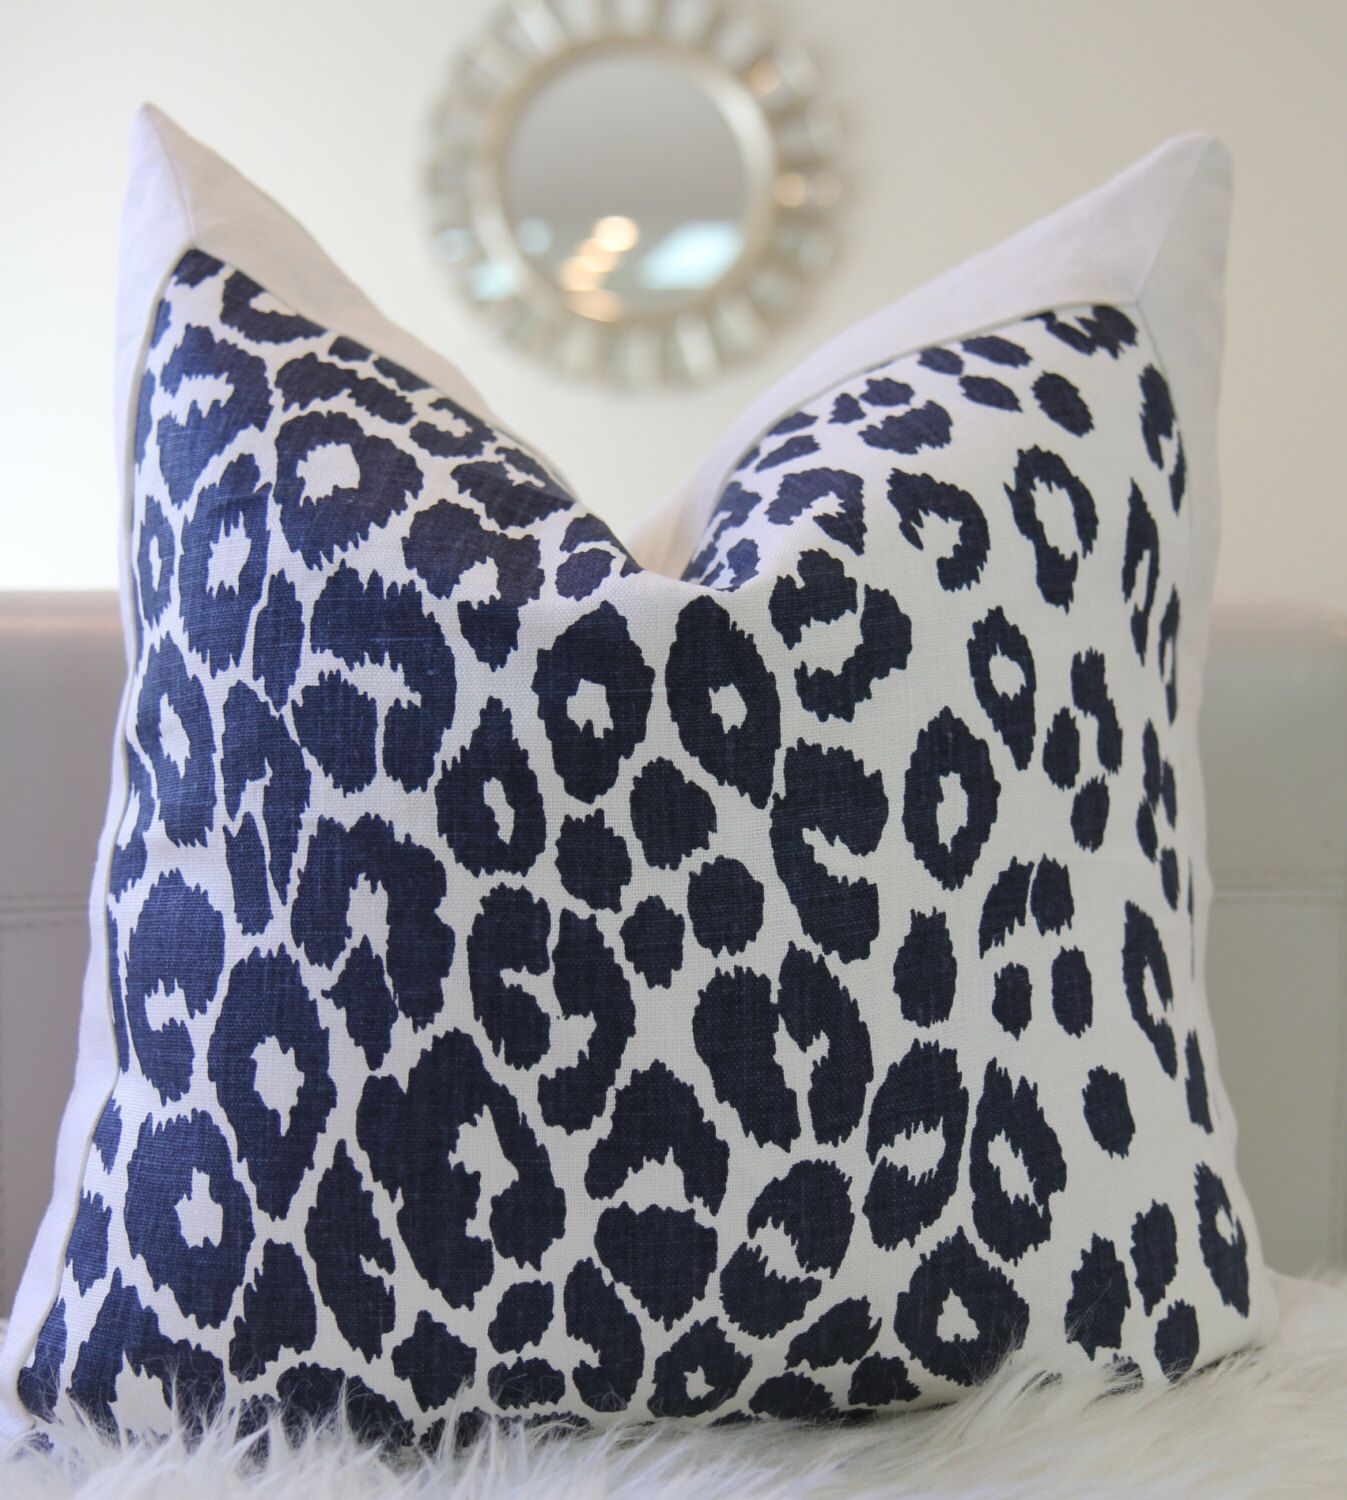 Etsy Throw Pillows 19x19 Schumacher Iconic Leopard Ink Flawed As It Is Navy Pillow